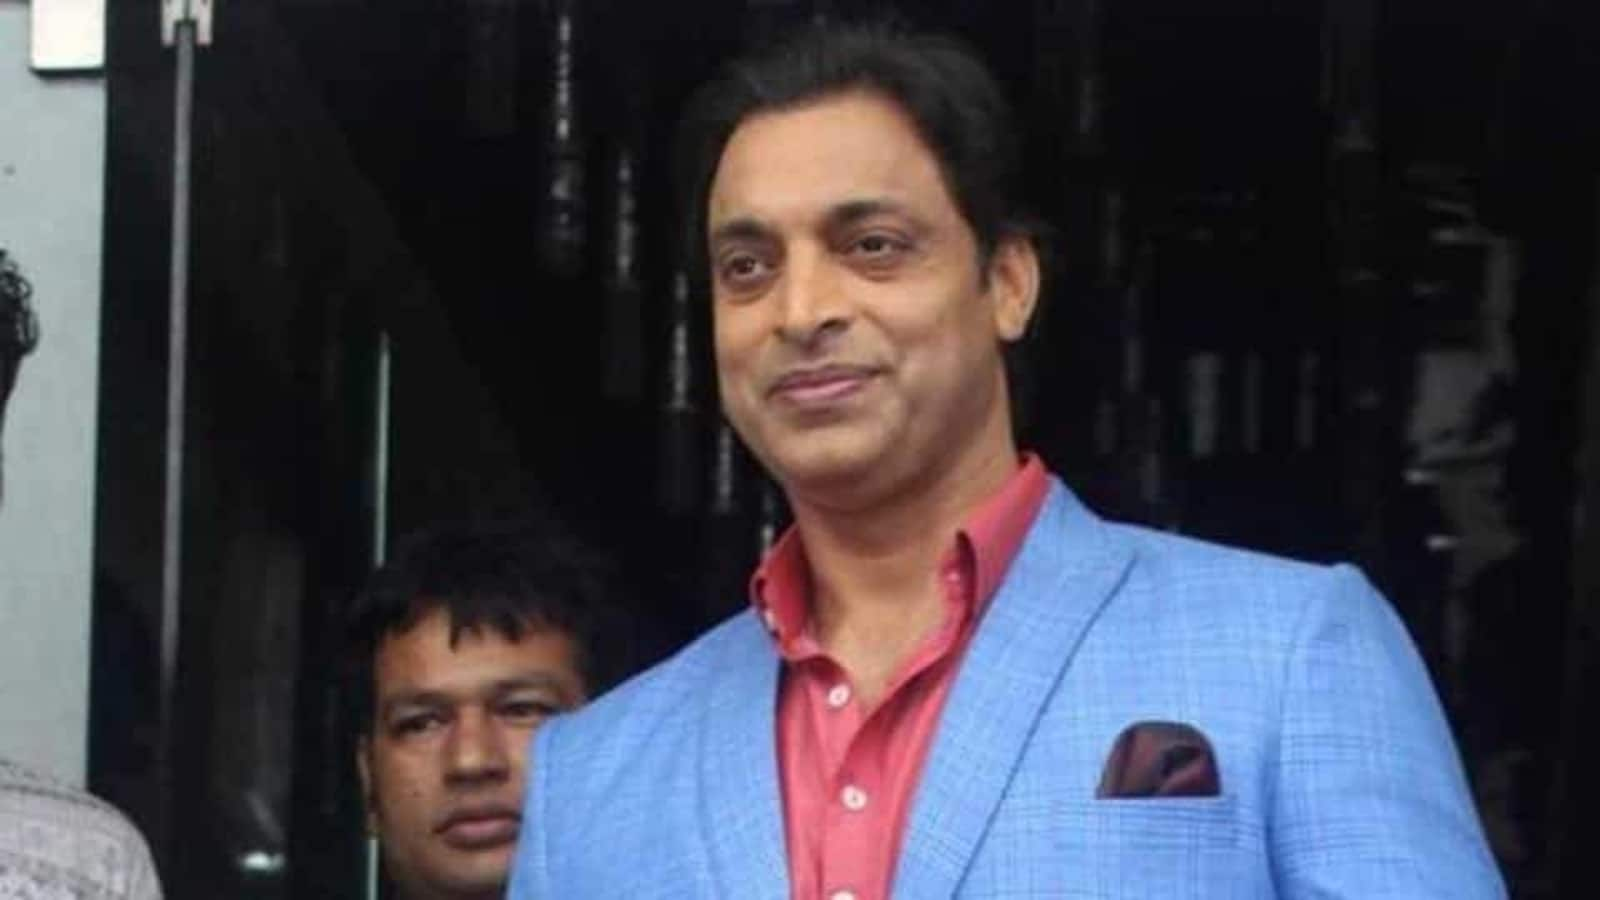 'He might become fastest bowler to get 100 wickets,' Shoaib Akhtar's huge prediction for India spinner - Hindustan Times